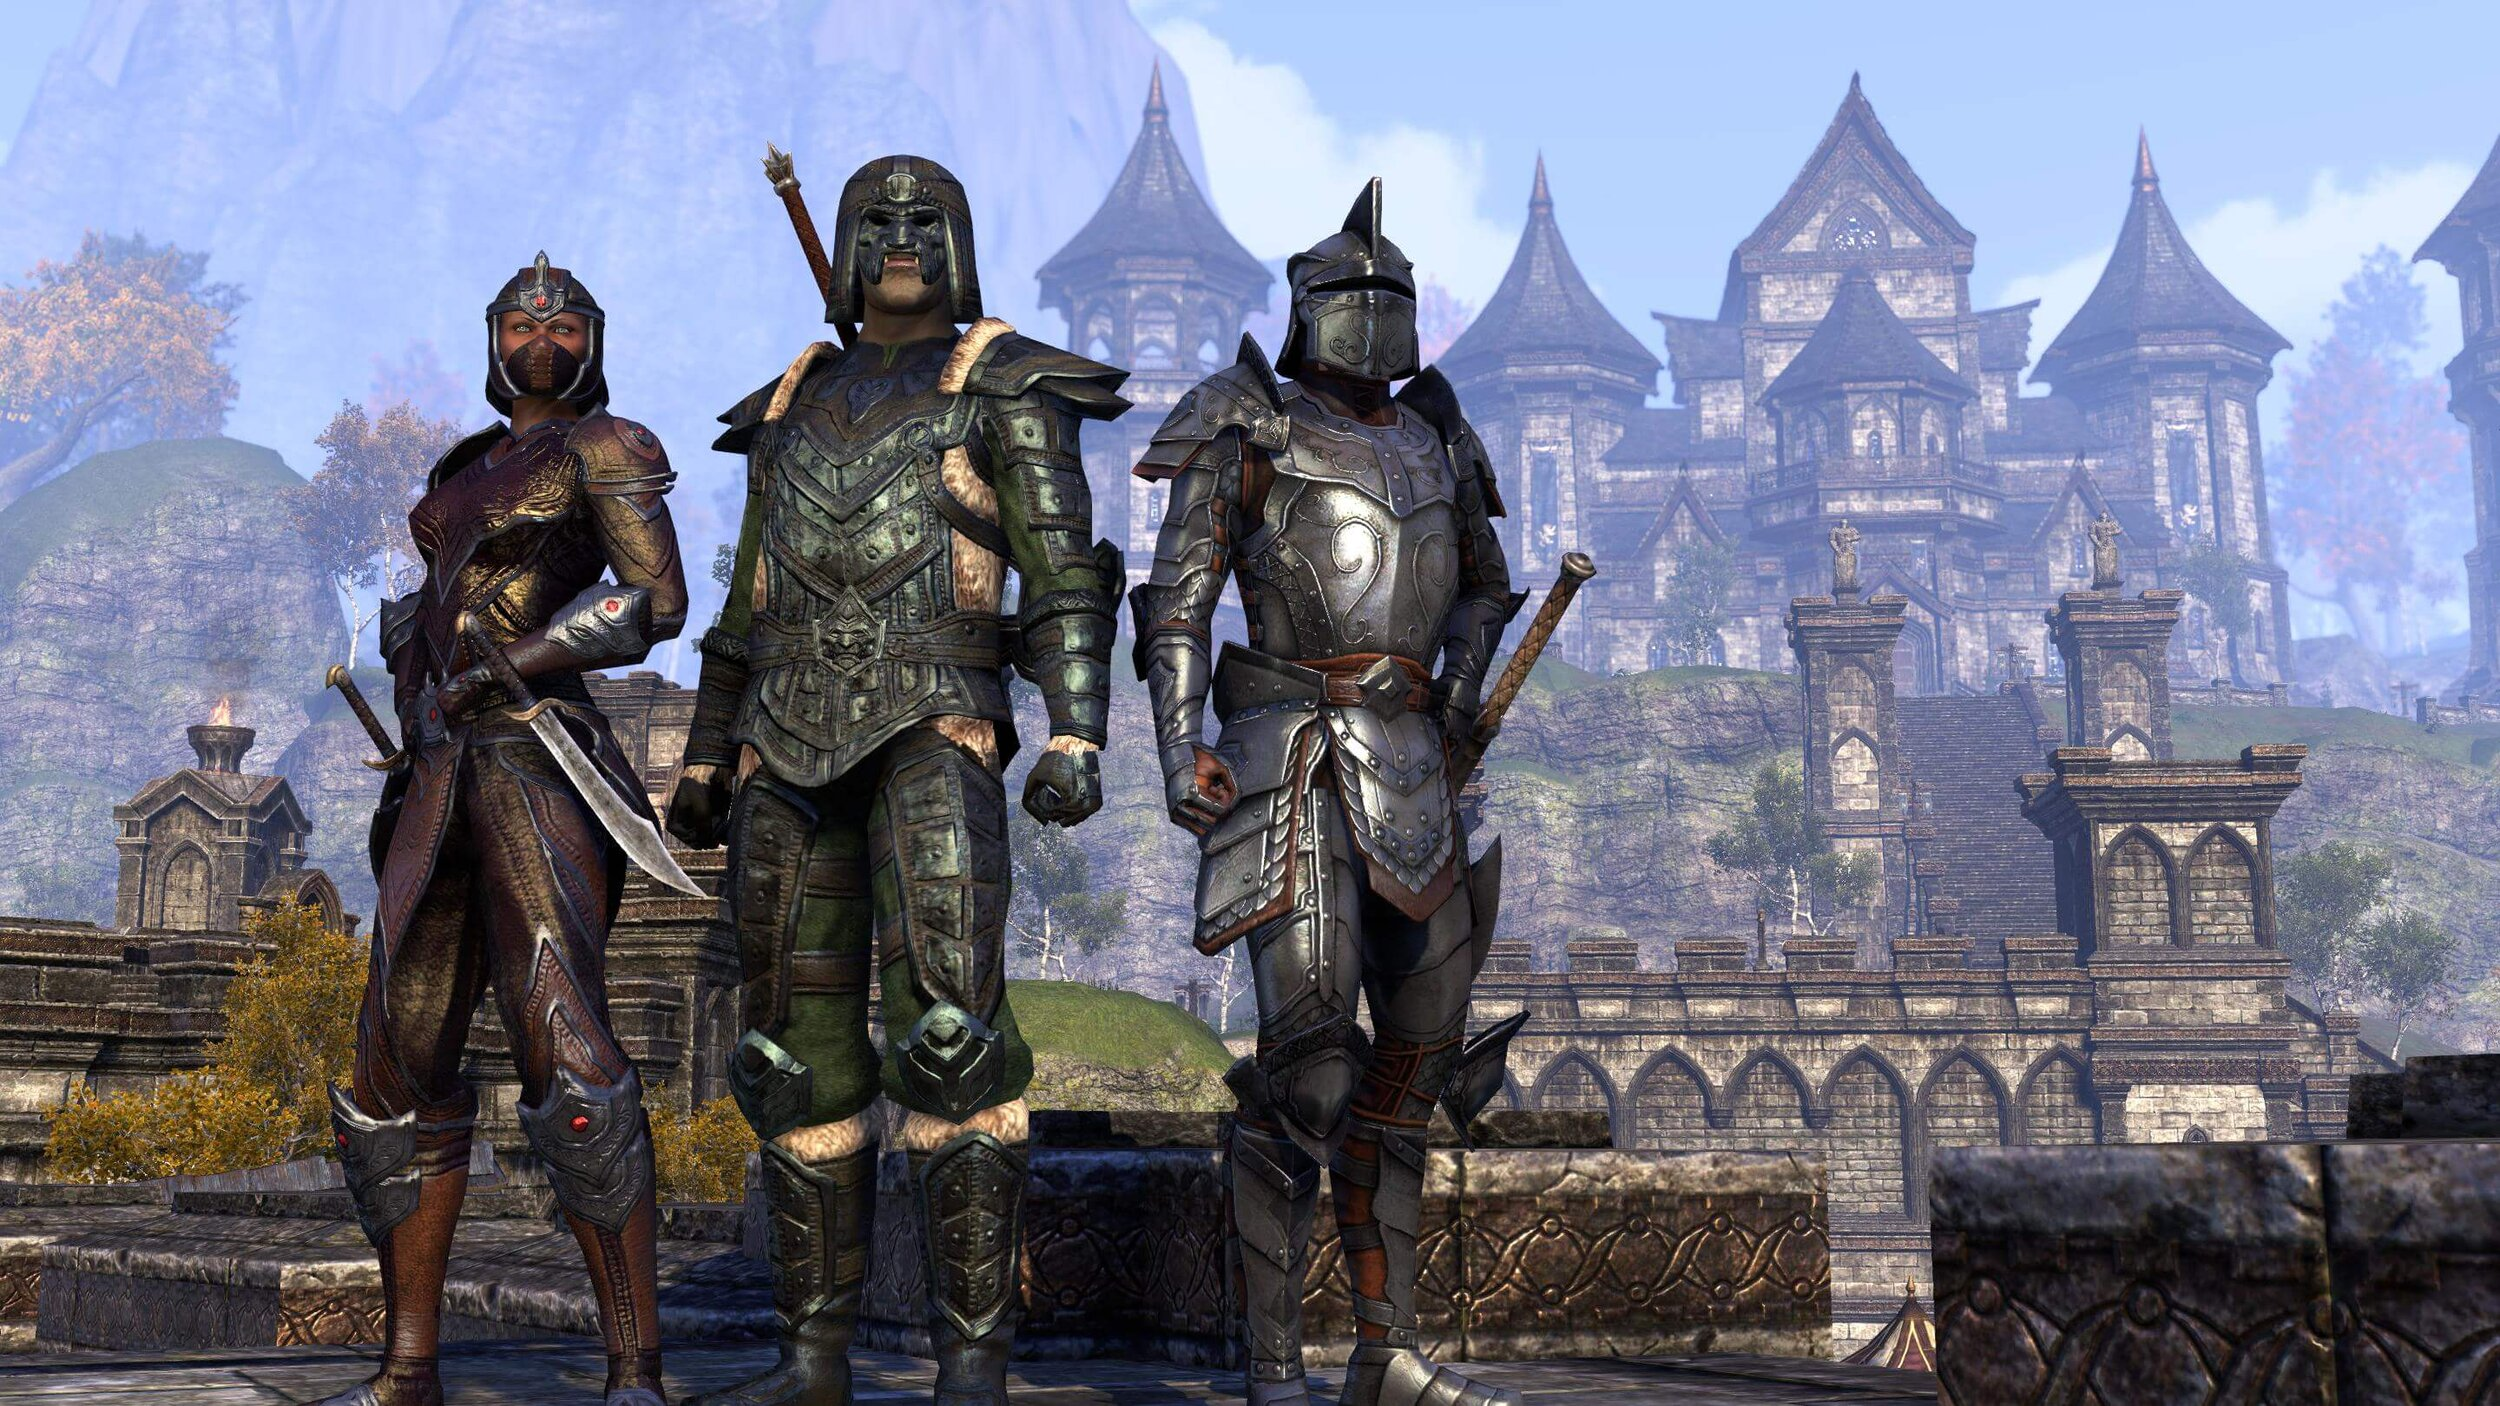 The Daggerfall Covenant includes the races of Orc, Redguard and Breton.